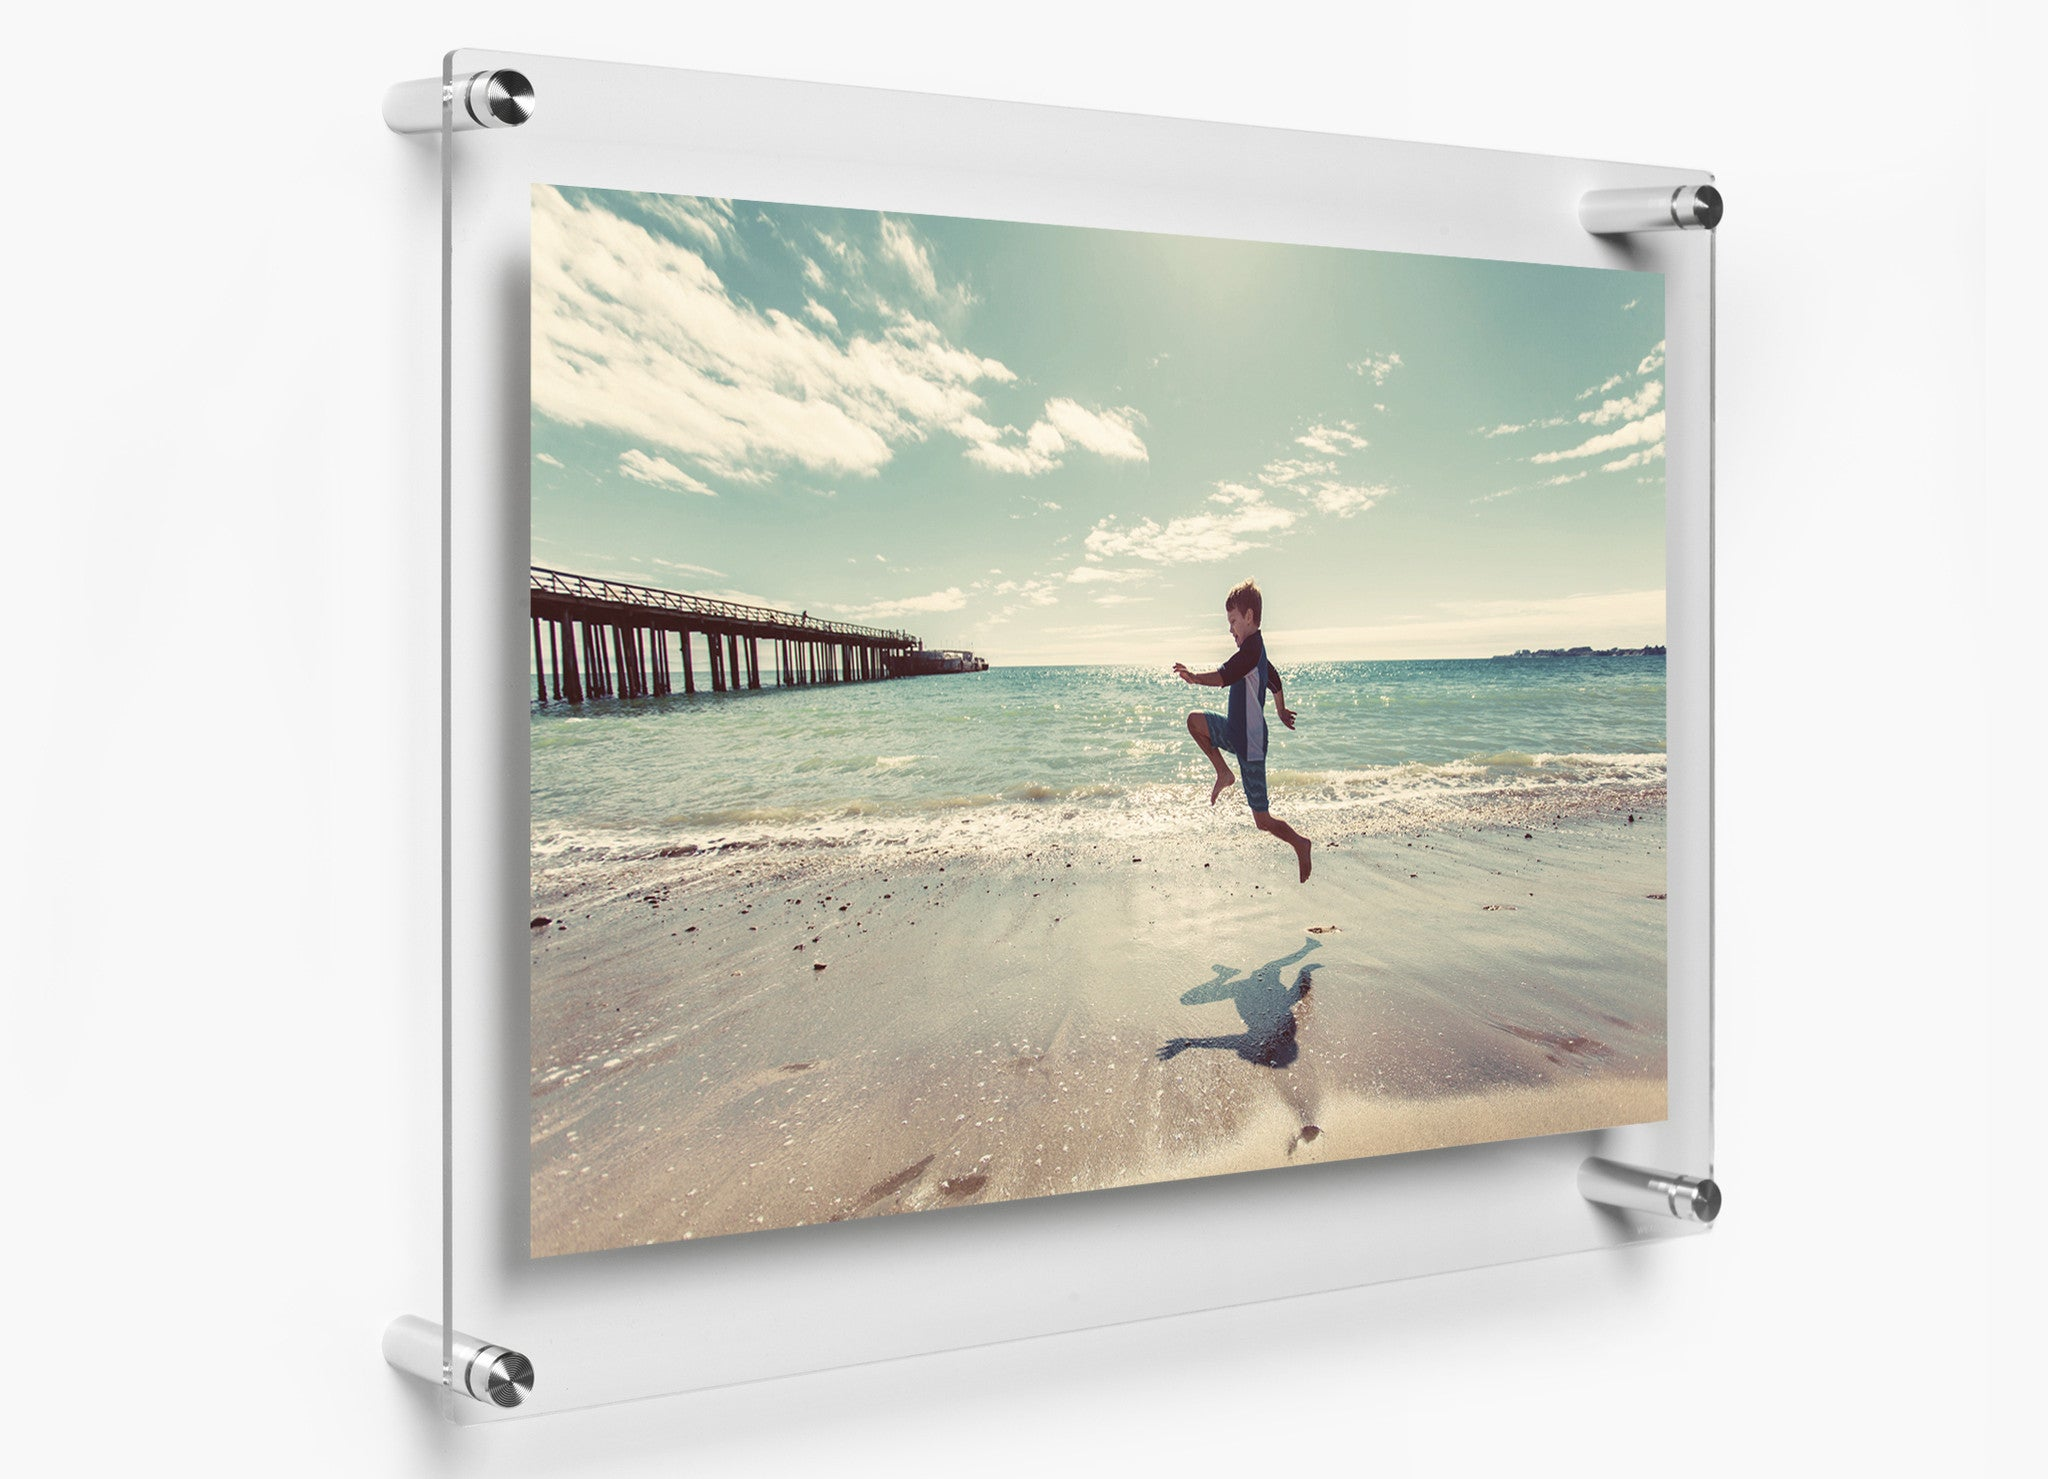 19 Quot X 23 Quot Acrylic Double Panel Floating Wall Frame Wexel Art